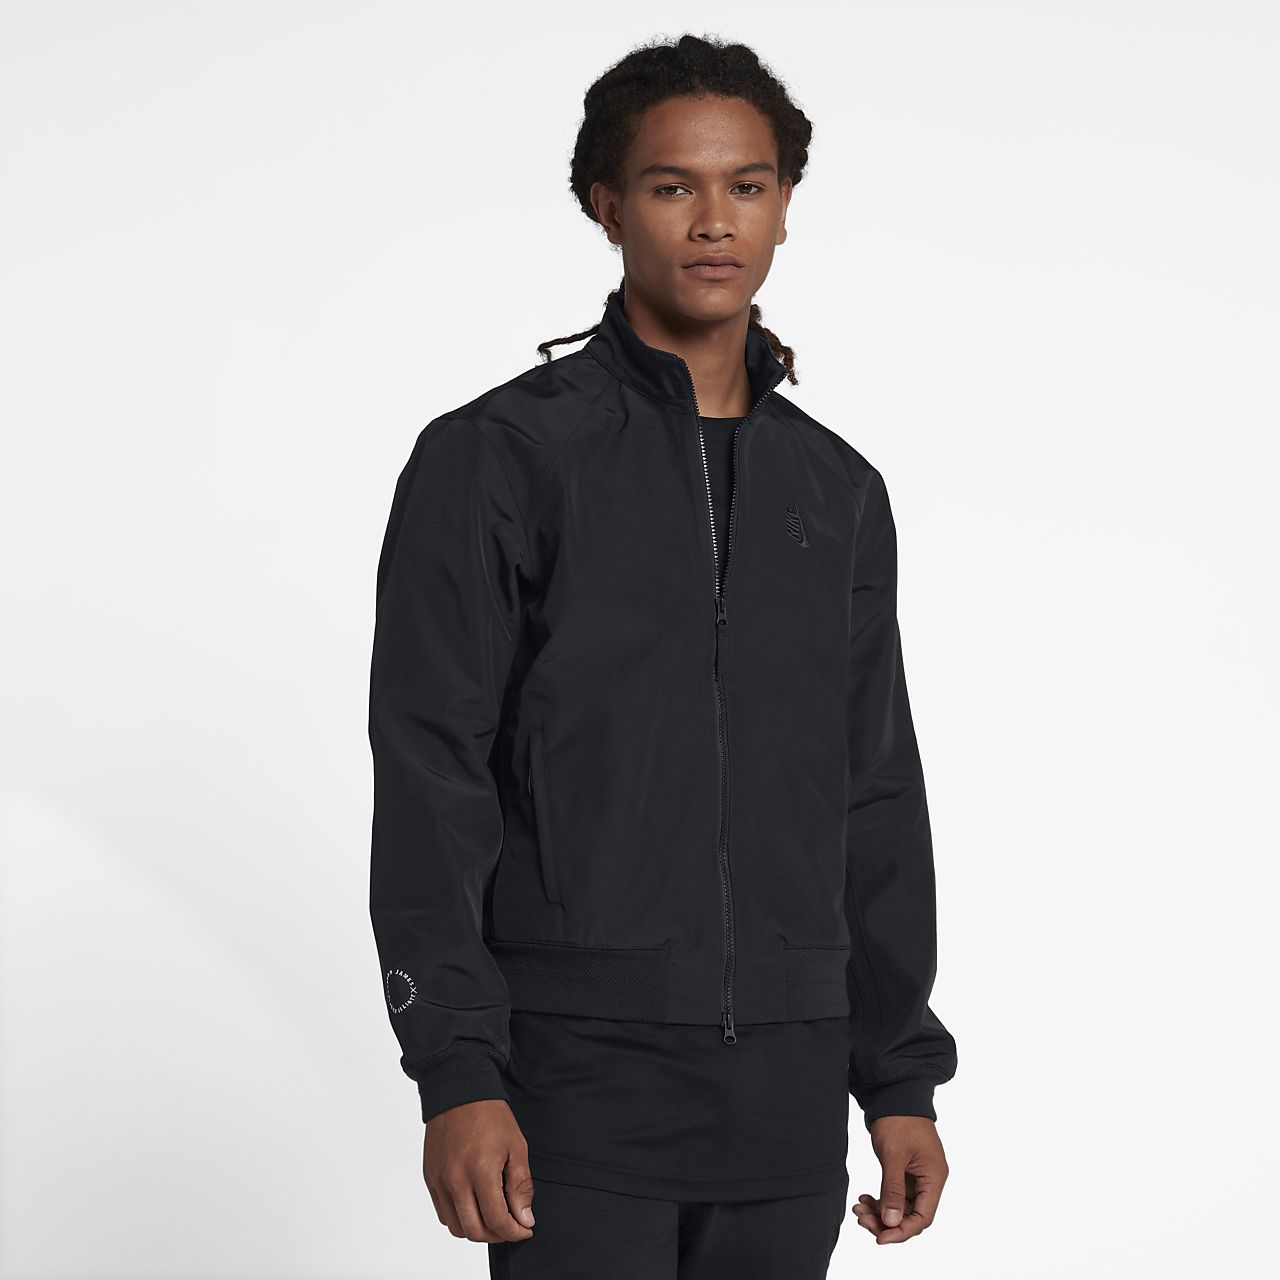 LeBron James x John Elliott Men's Blouson